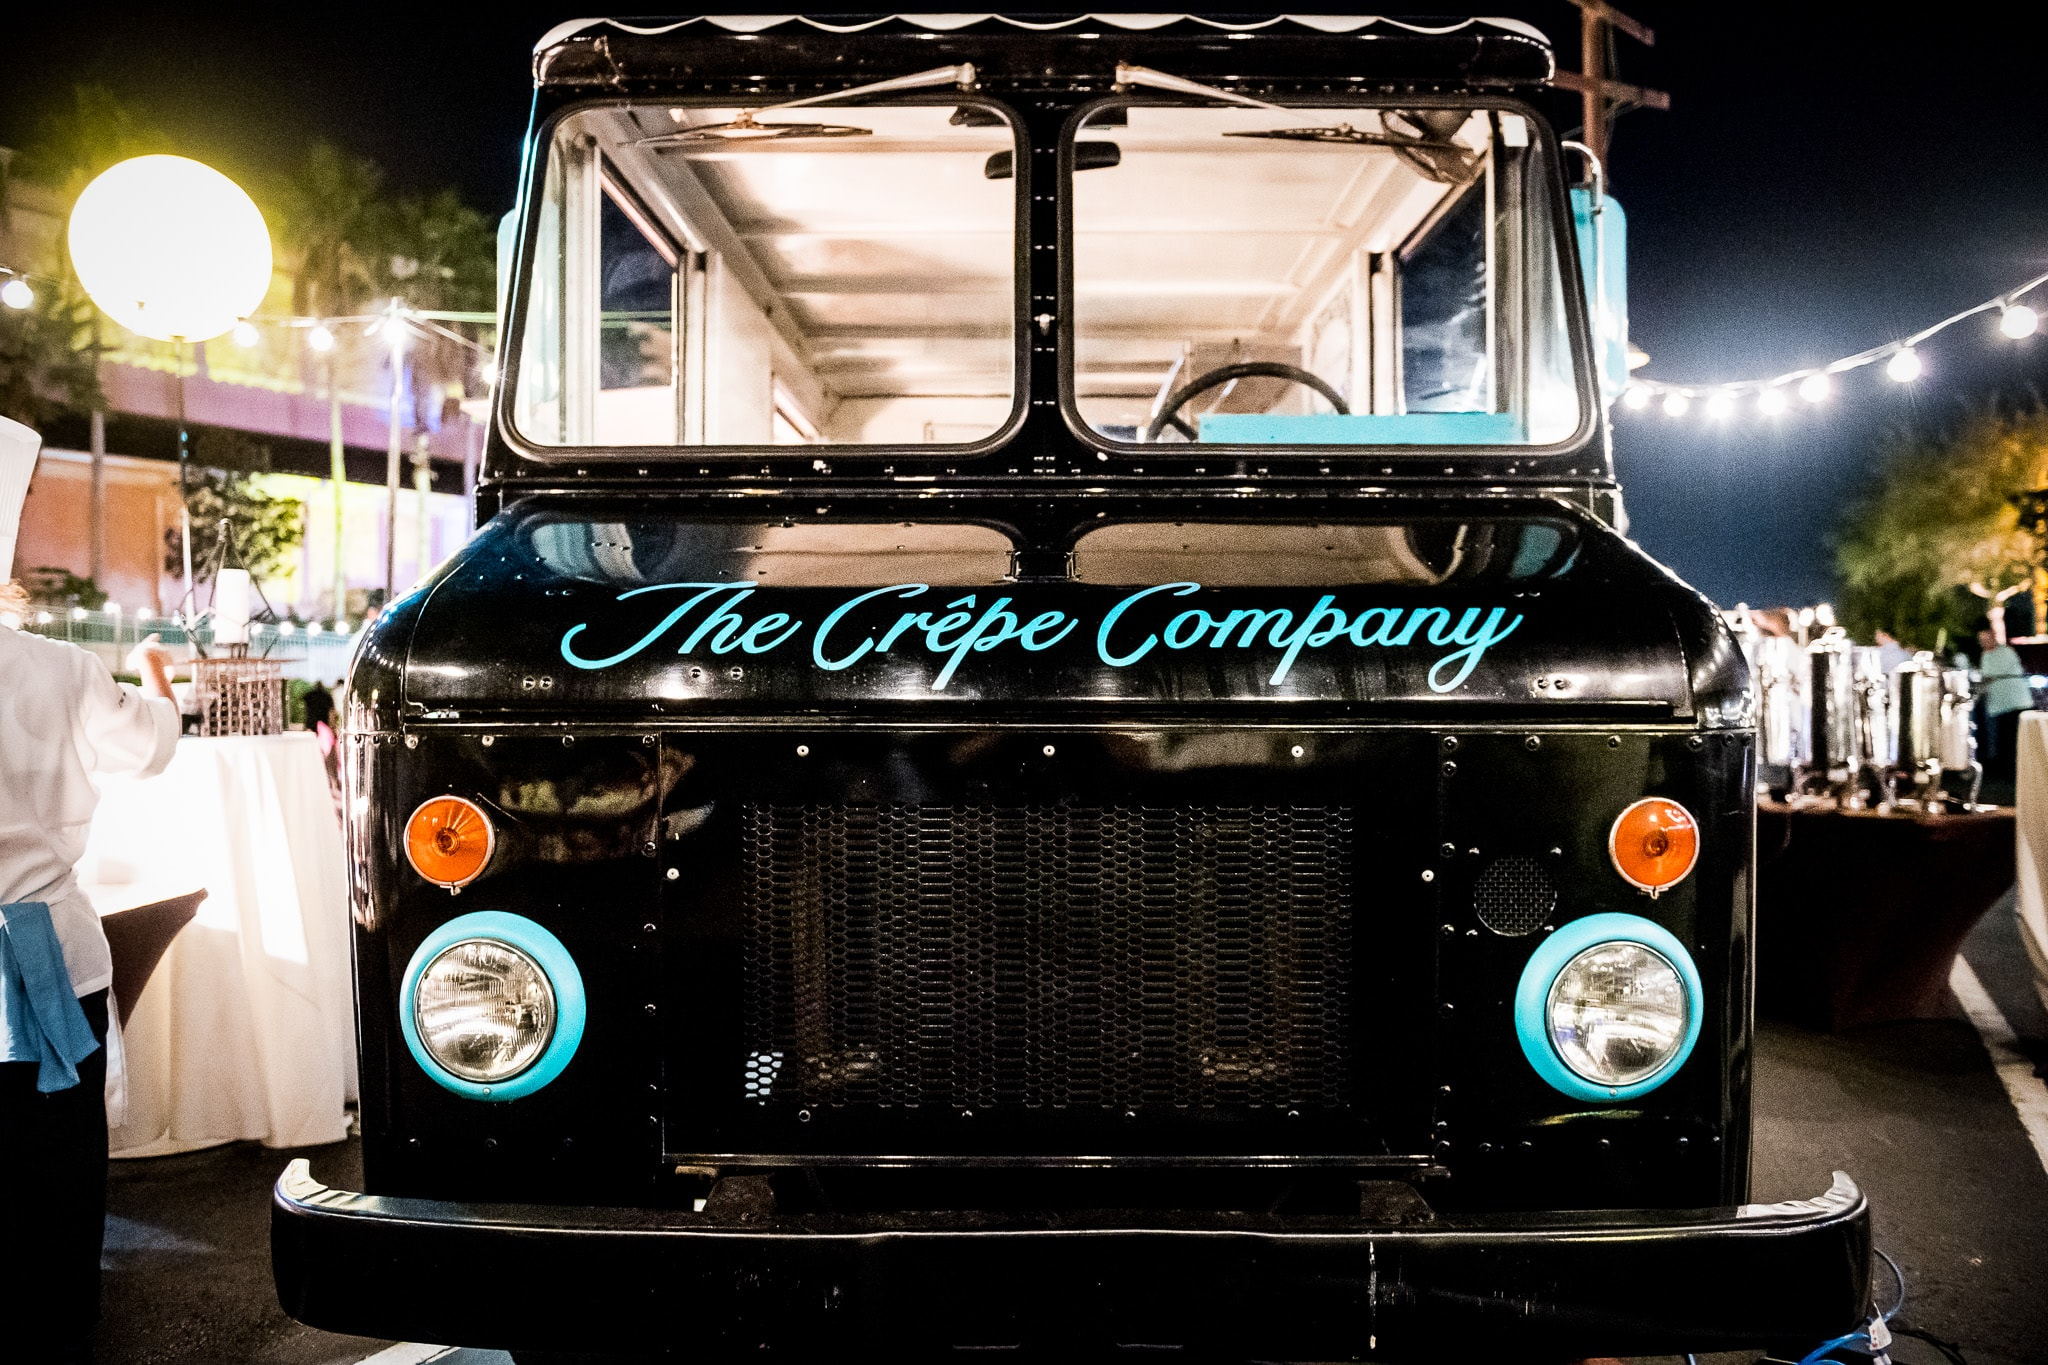 The Crepe Company Food Truck at the Food Truck party celebrating EY employees